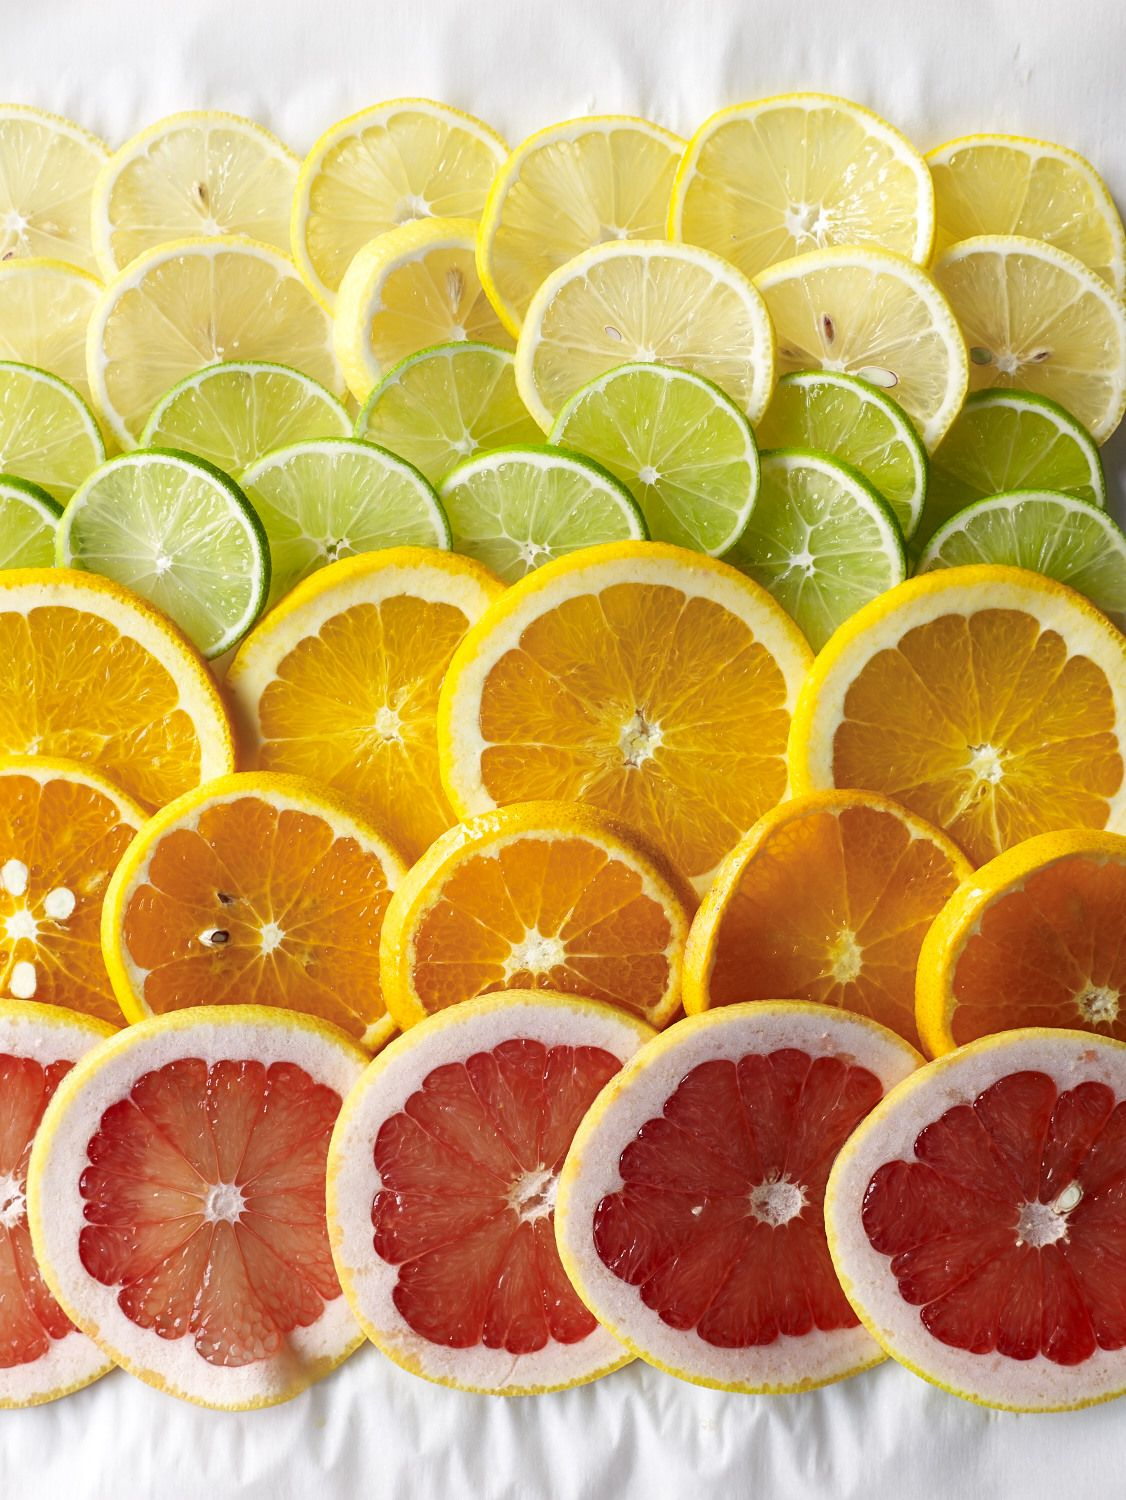 Party Planner Celebrate Citrus Fruit Photography Fruit Fruits